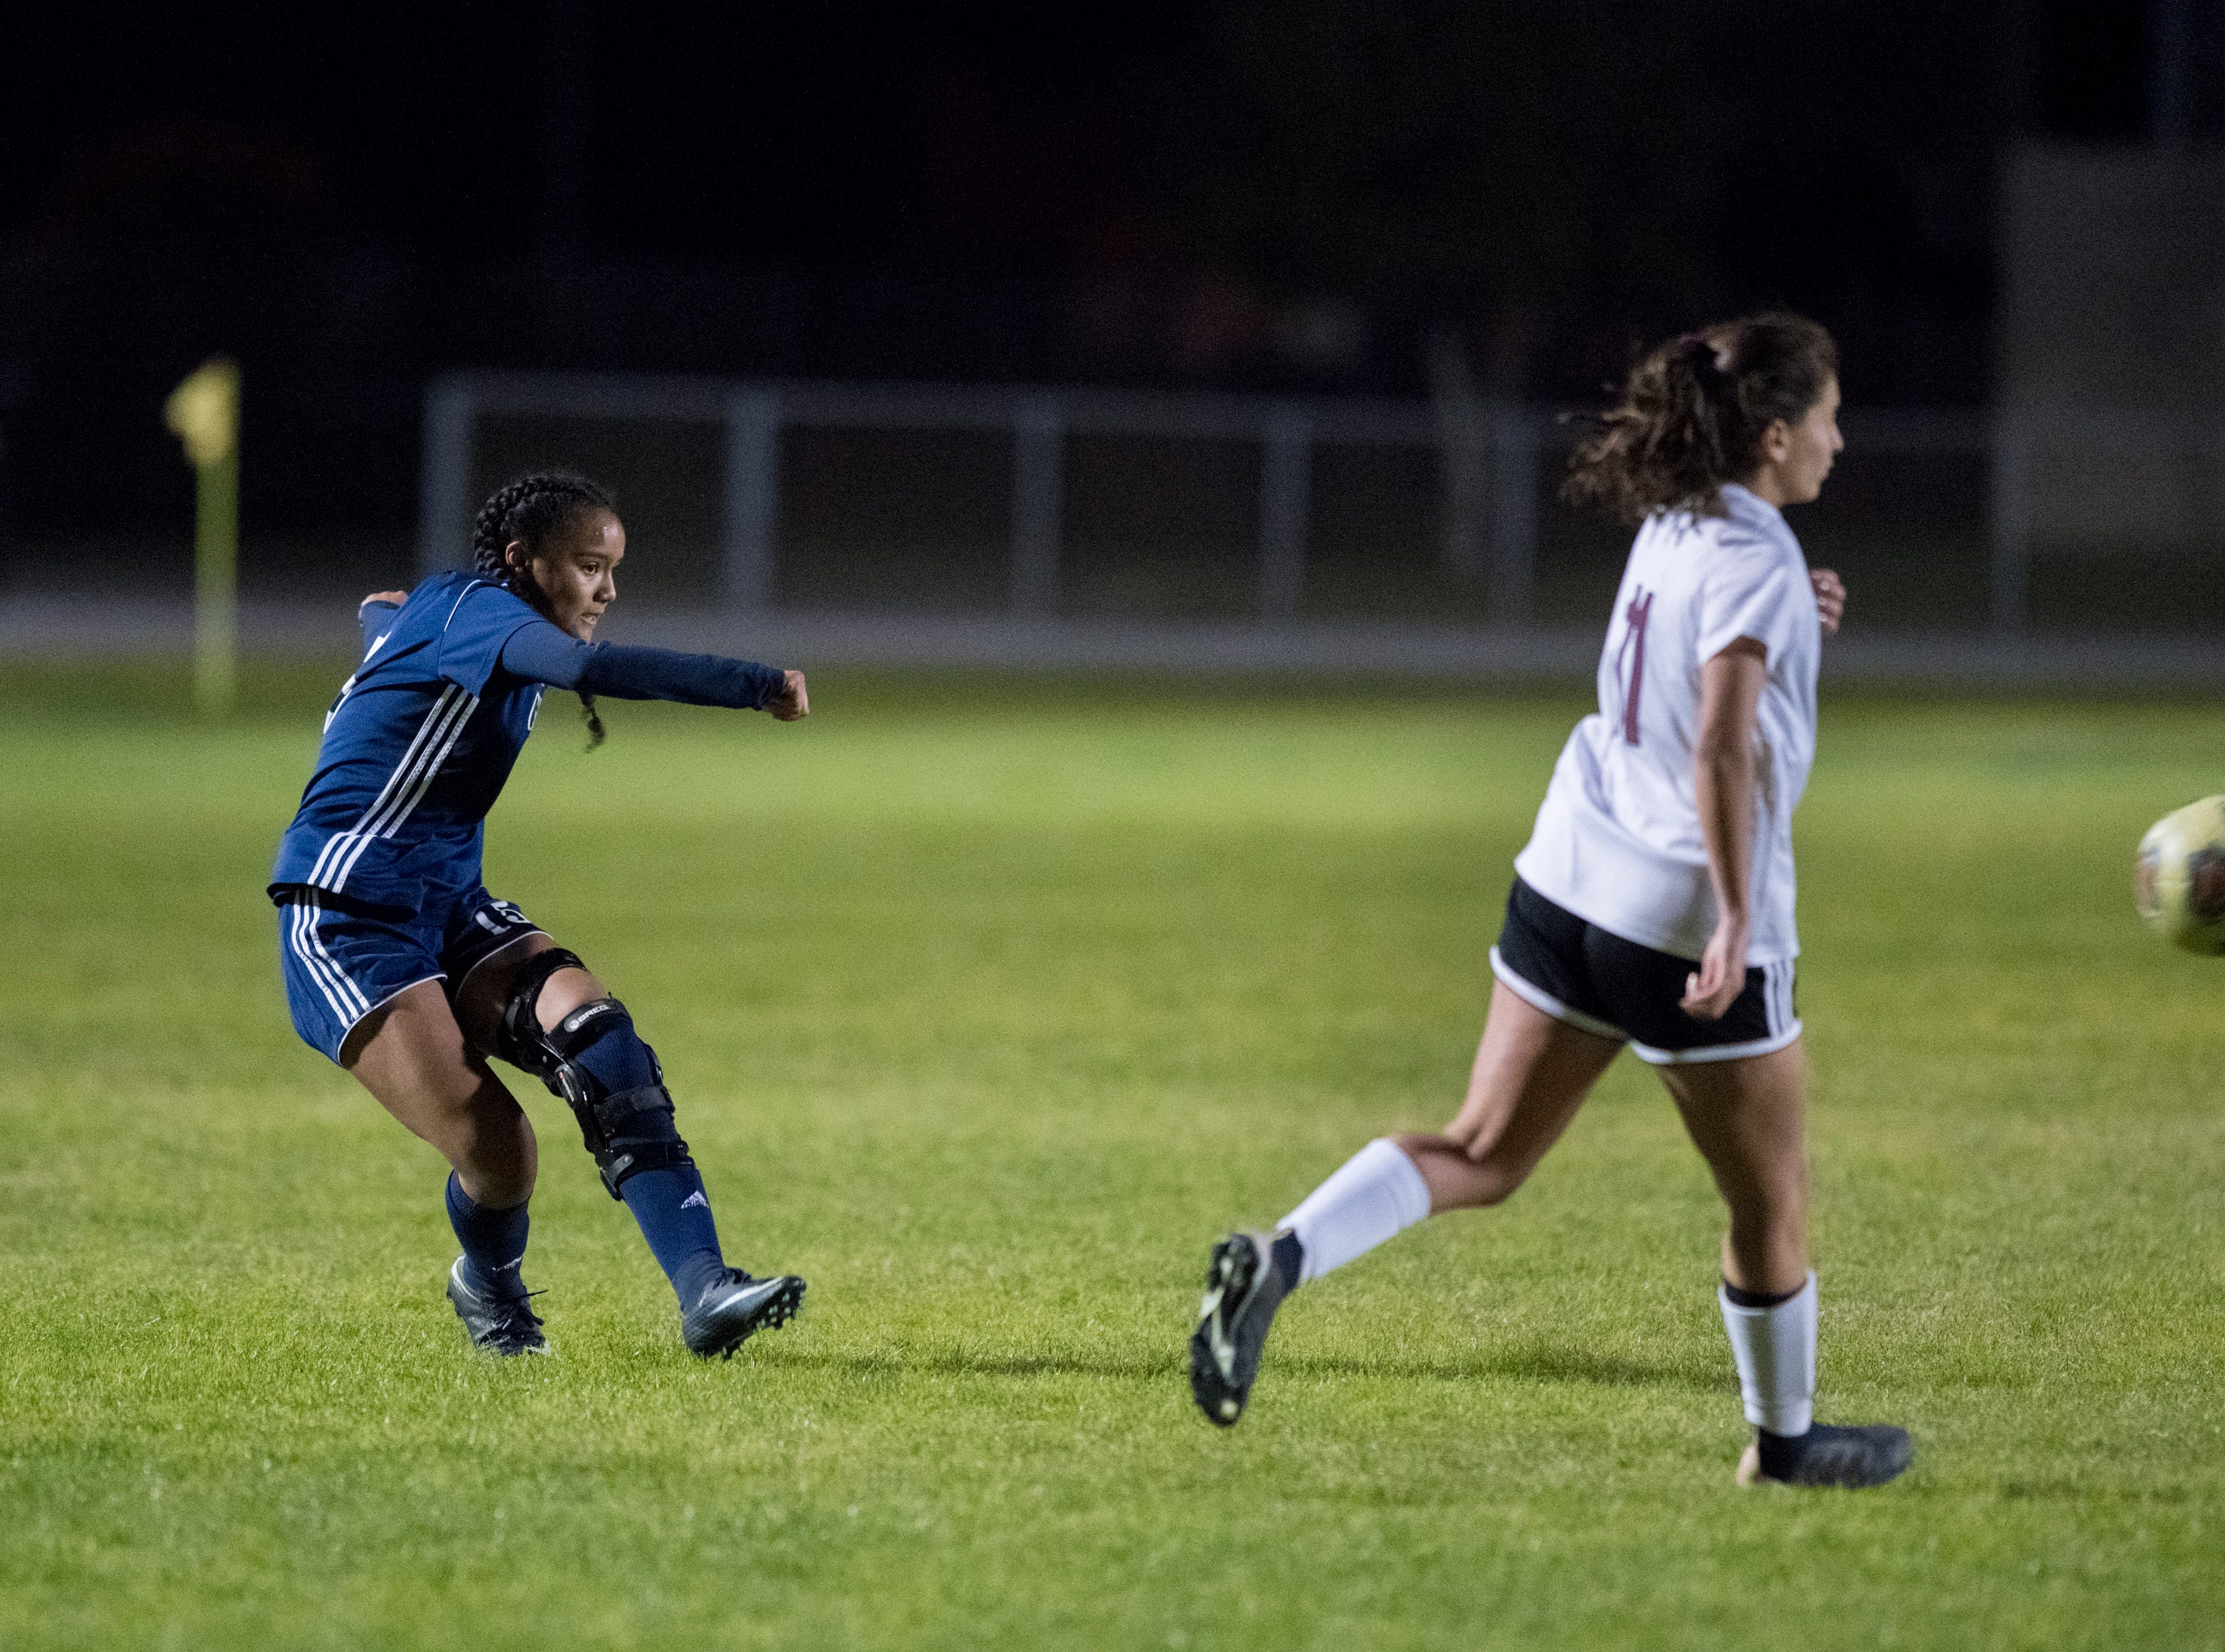 Aila Swinton (15) passes the ball during the Niceville vs Gulf Breeze soccer game at Gulf Breeze High School on Thursday, January 10, 2019.